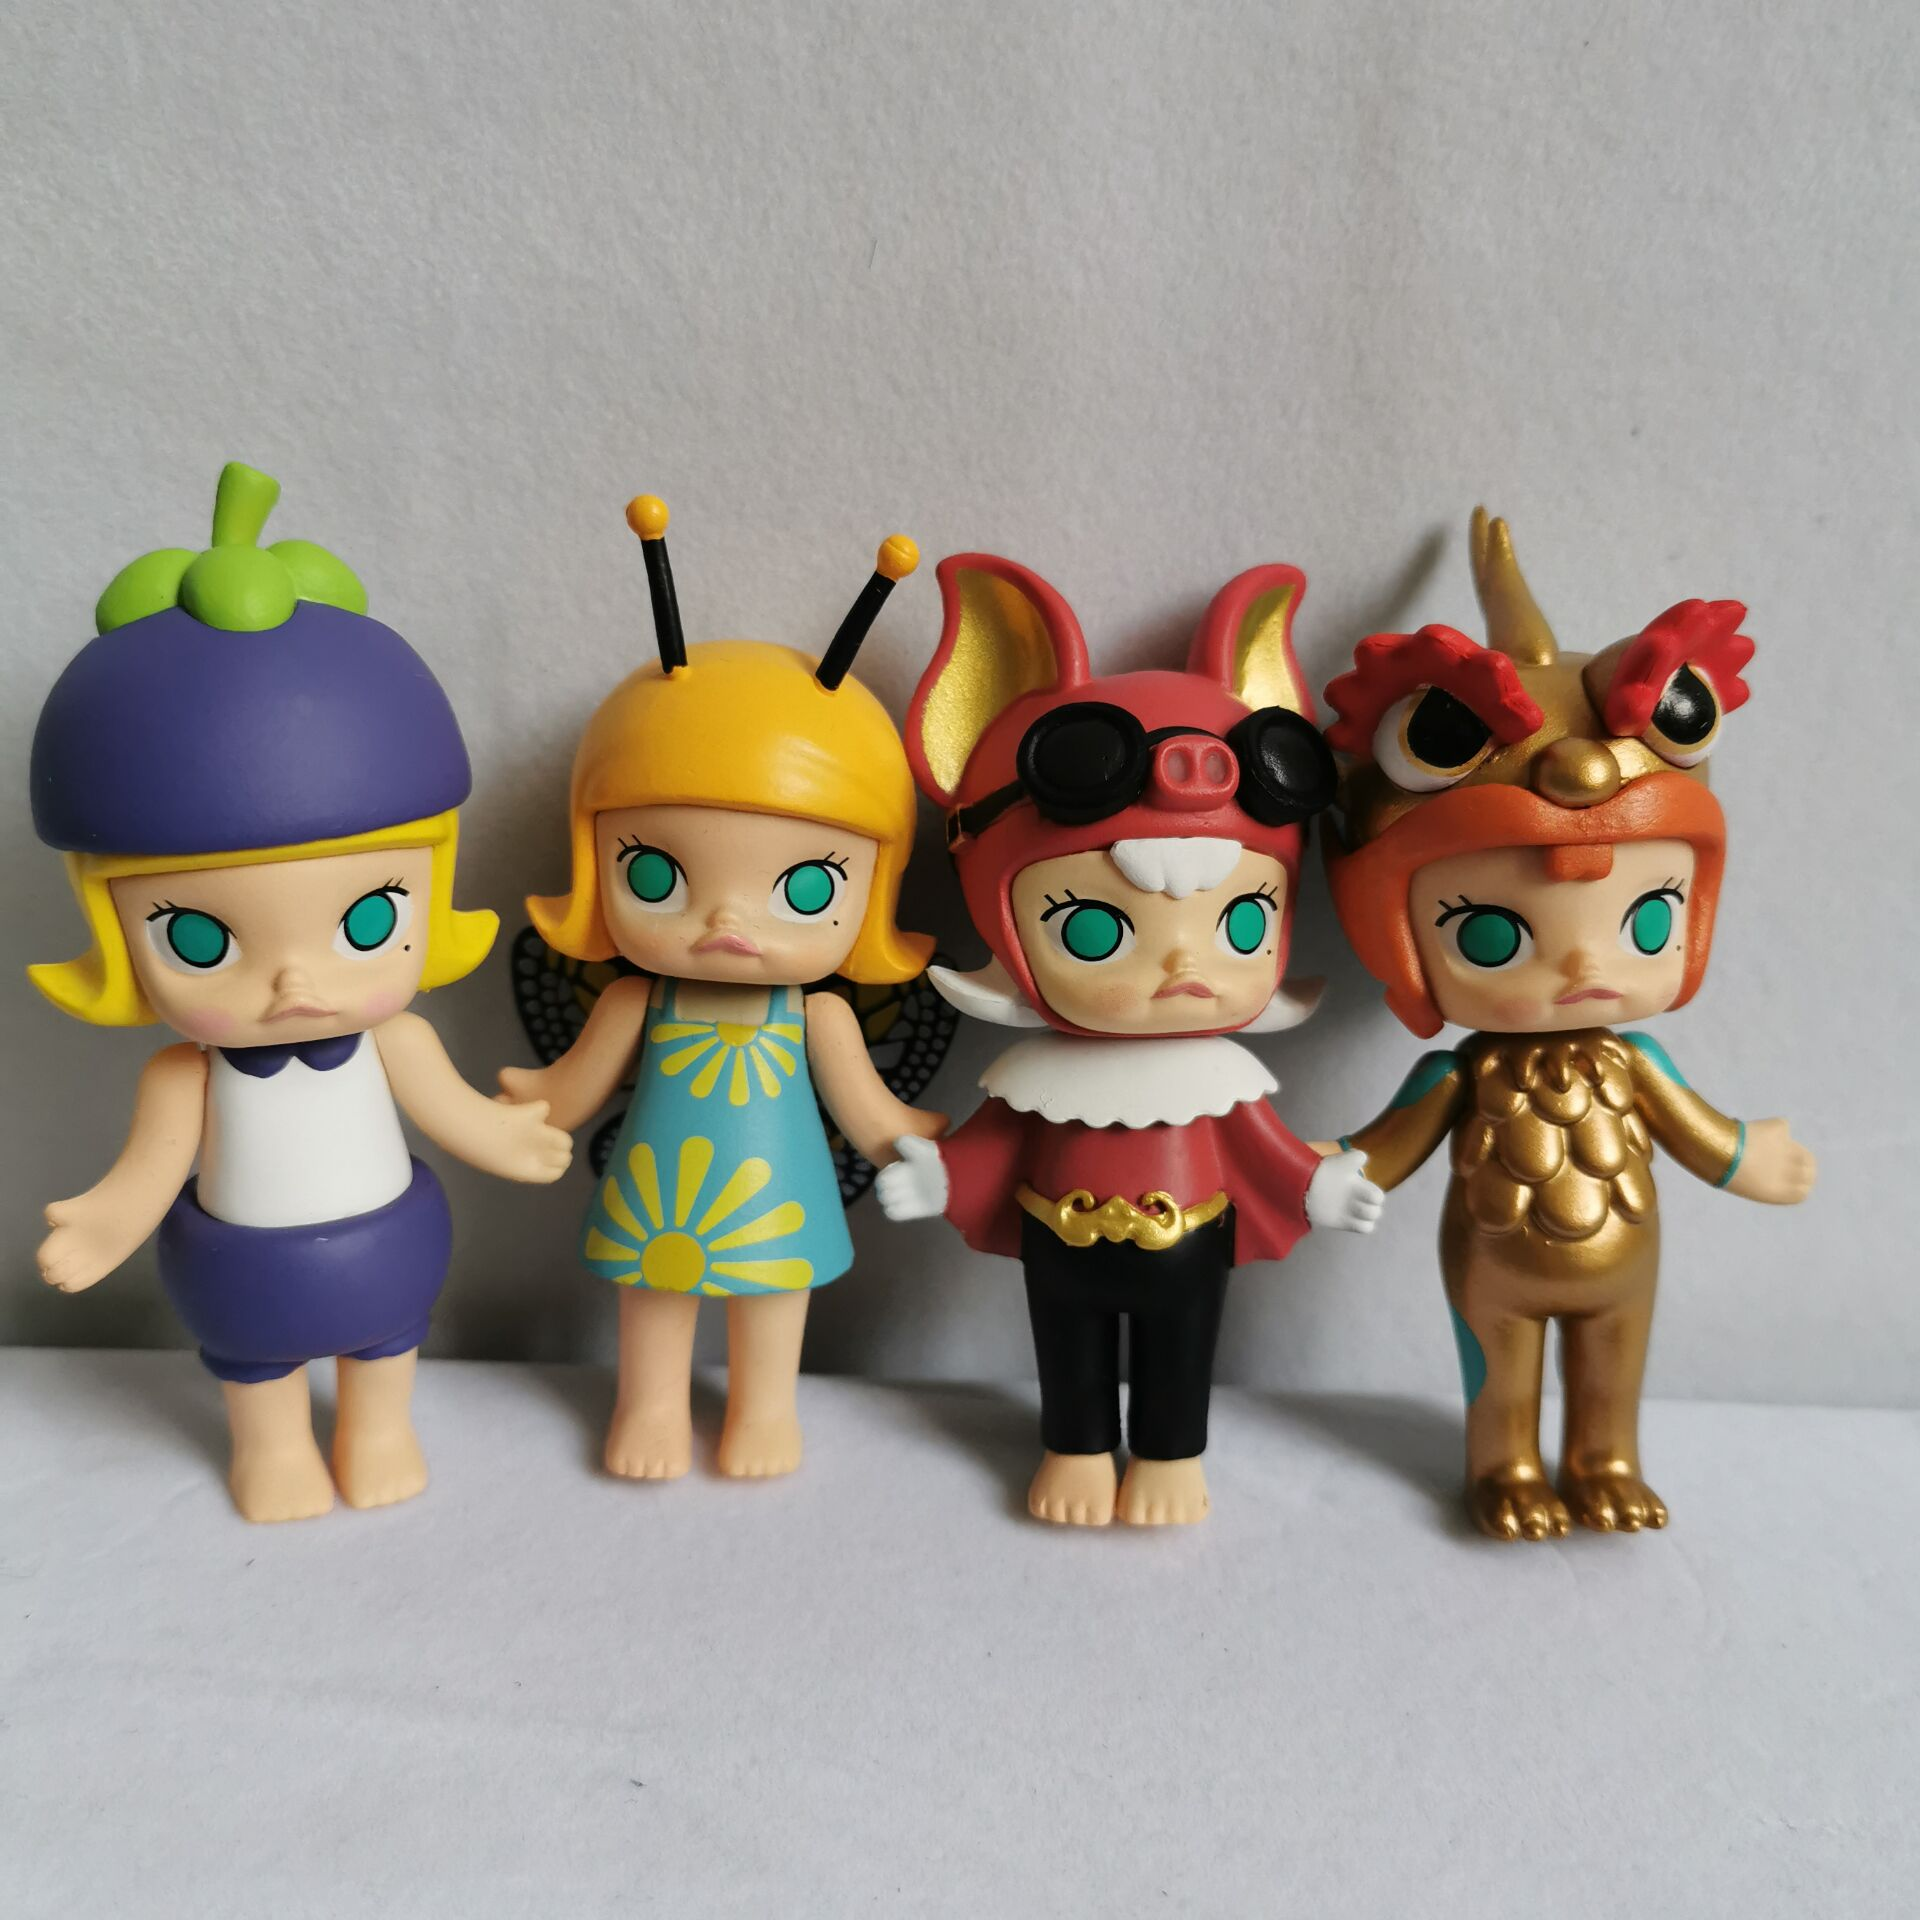 5x LOL Surprise Doll Figure Mini Sister Series Random Toy ANGEL Set Gift For Kid